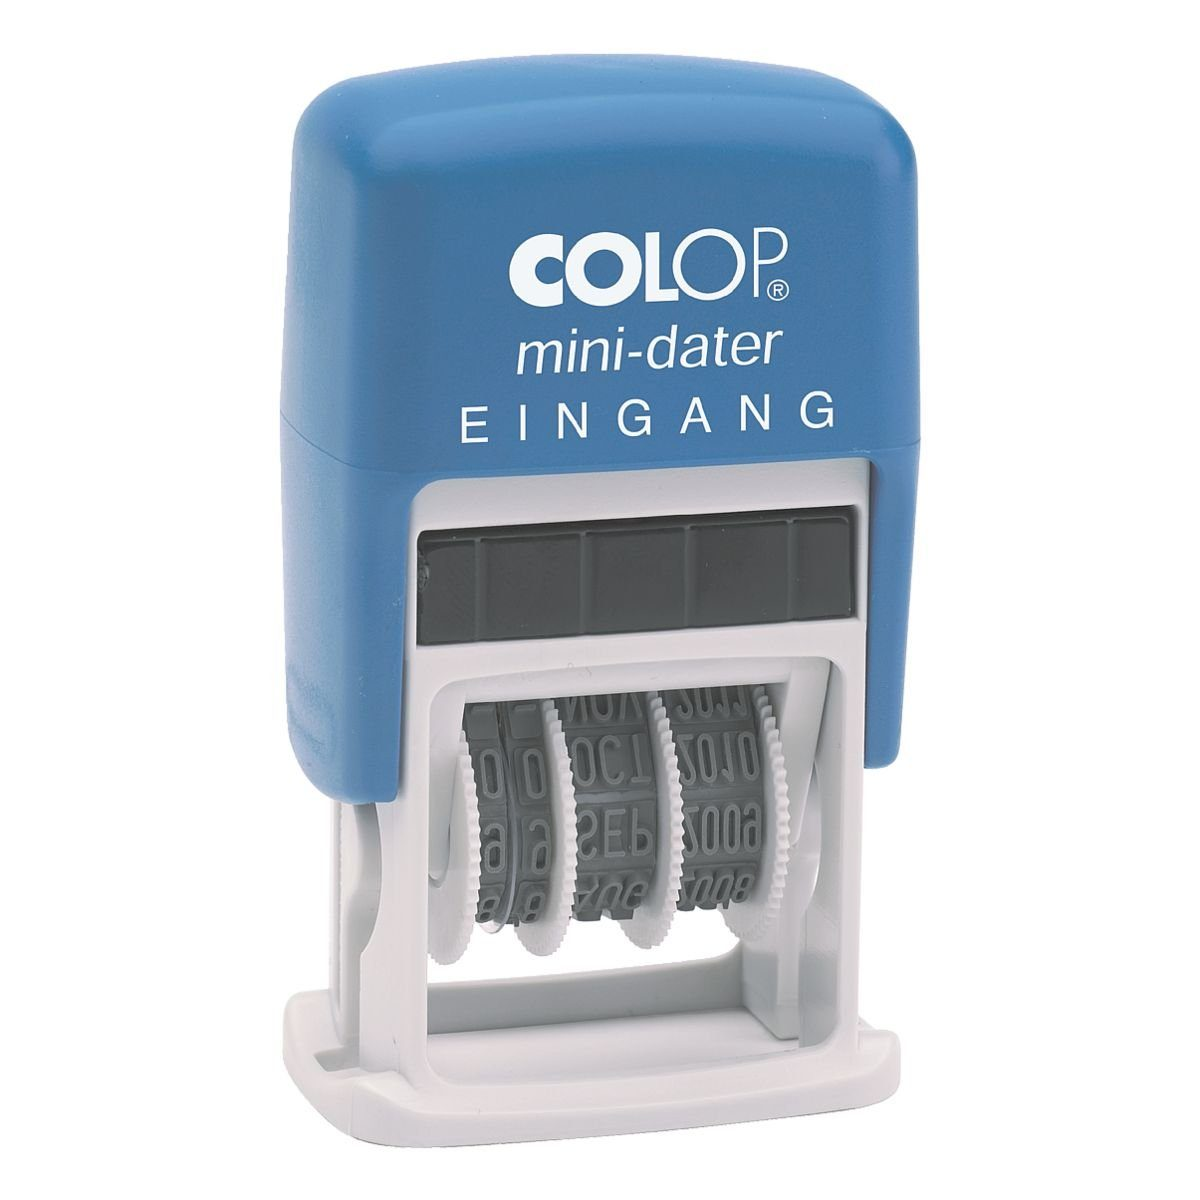 Colop Datumstempel Mini-Dater »S 160/L« Eingang